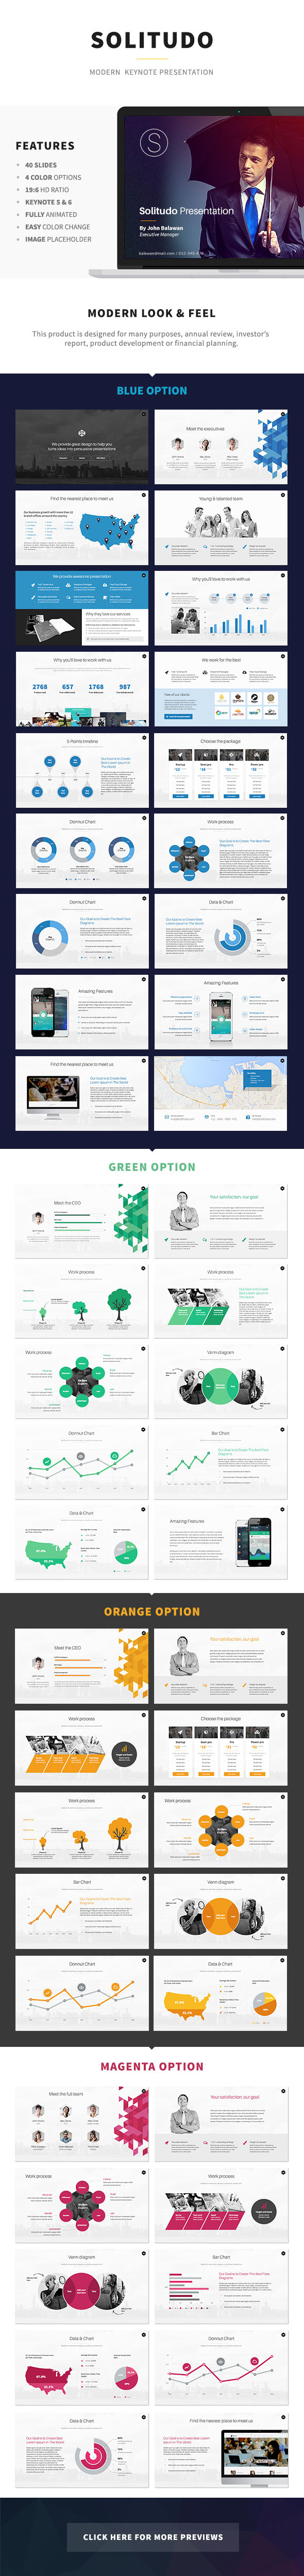 GraphicRiver Solitudo Keynote Presentation 8804888